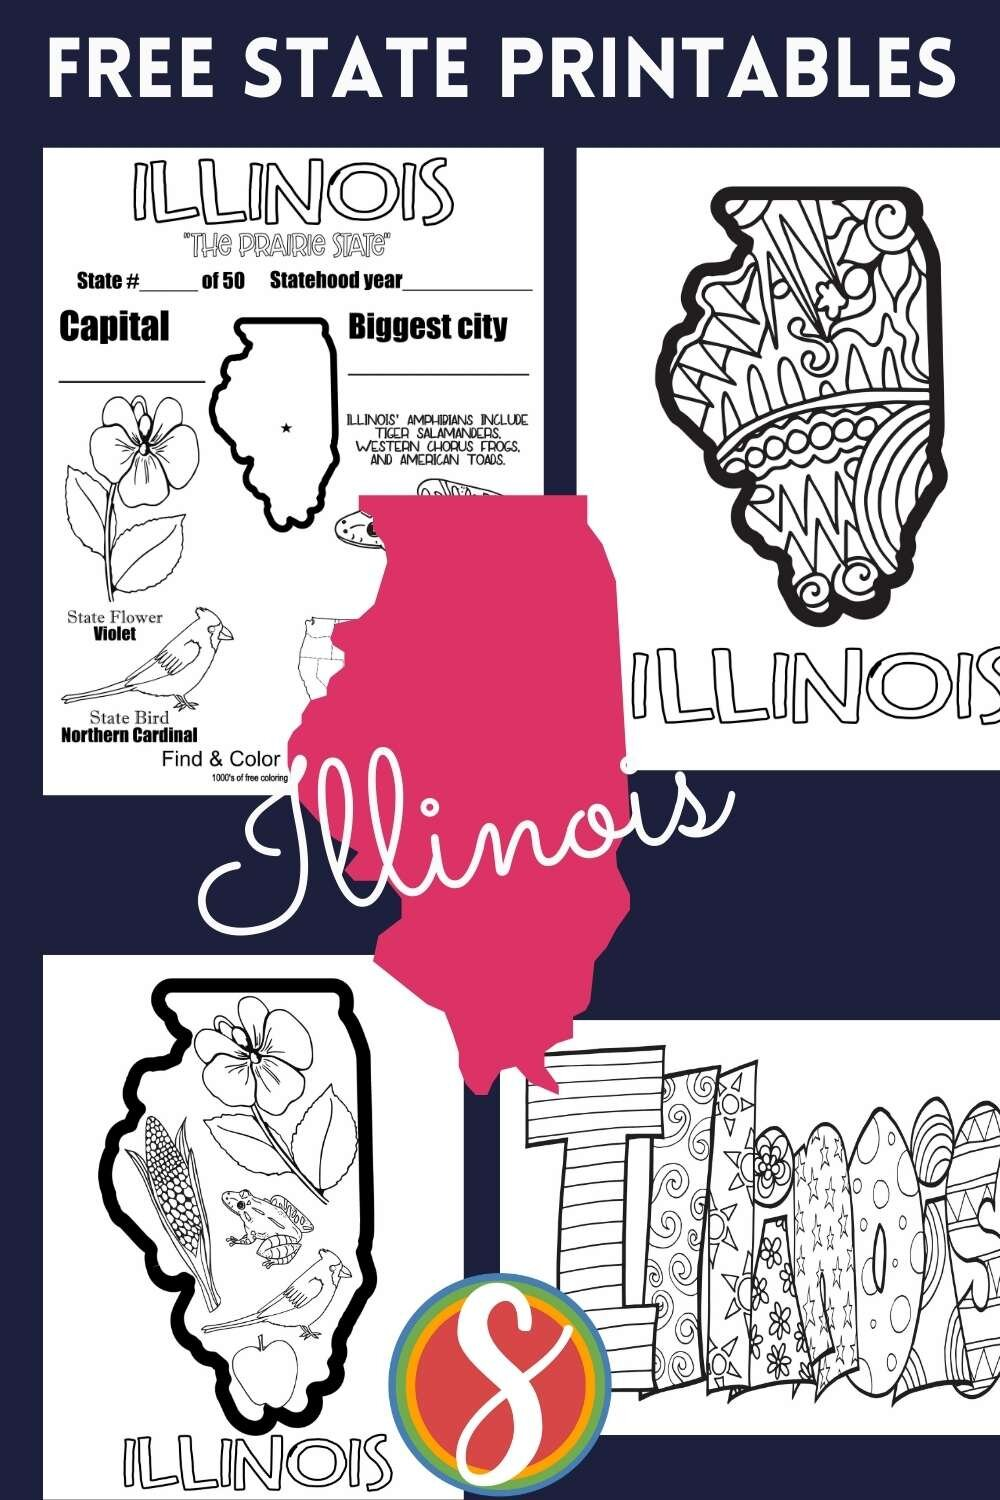 Free state activity coloring sheets from Stevie Doodles - all 50 state, four pages for each state - that's 200 coloring pages for your U.S. geography activities totally free from Stevie Doodles